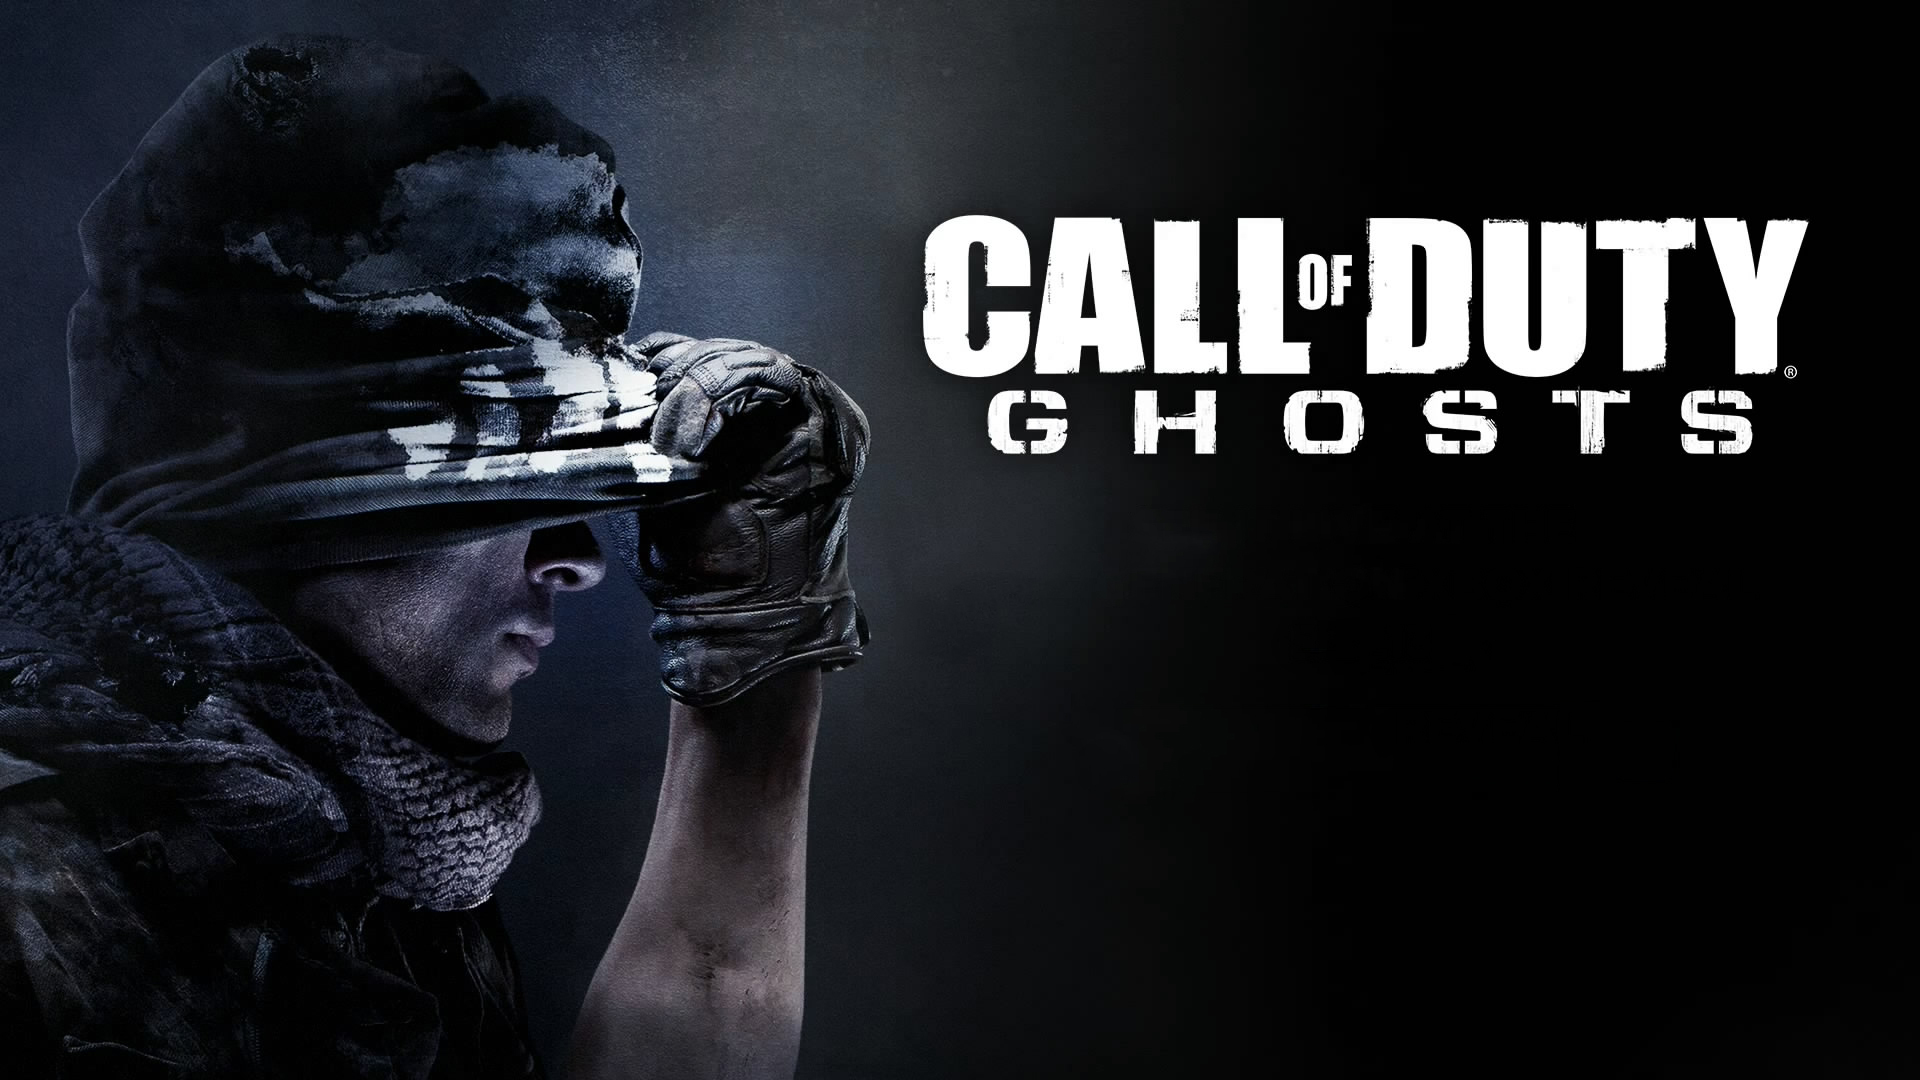 Download Game PC Call of Duty Ghost Single Link